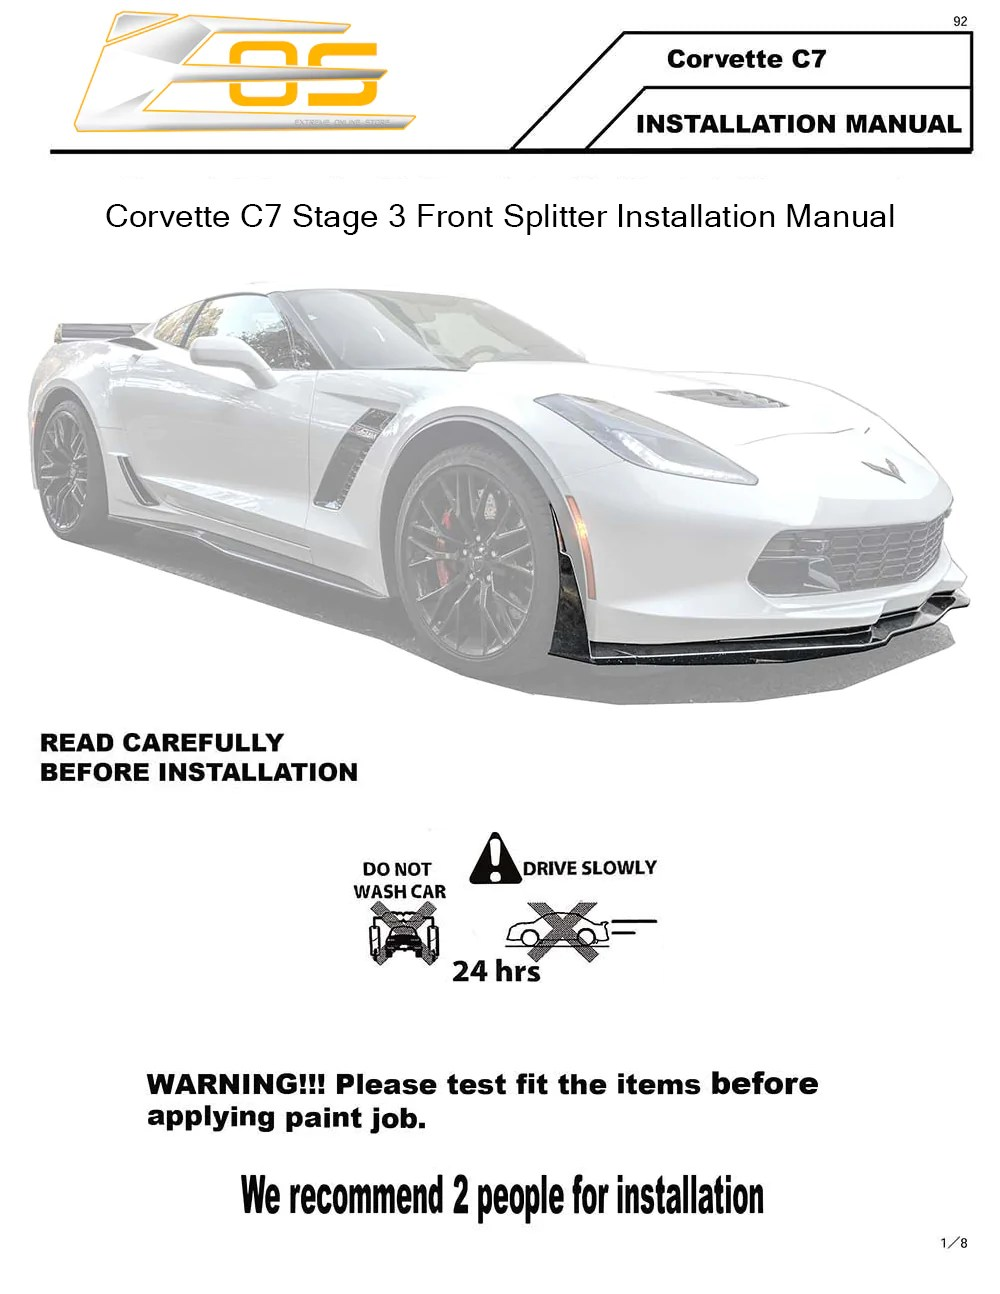 hight resolution of corvette c7 stage 3 front splitter installation instruction